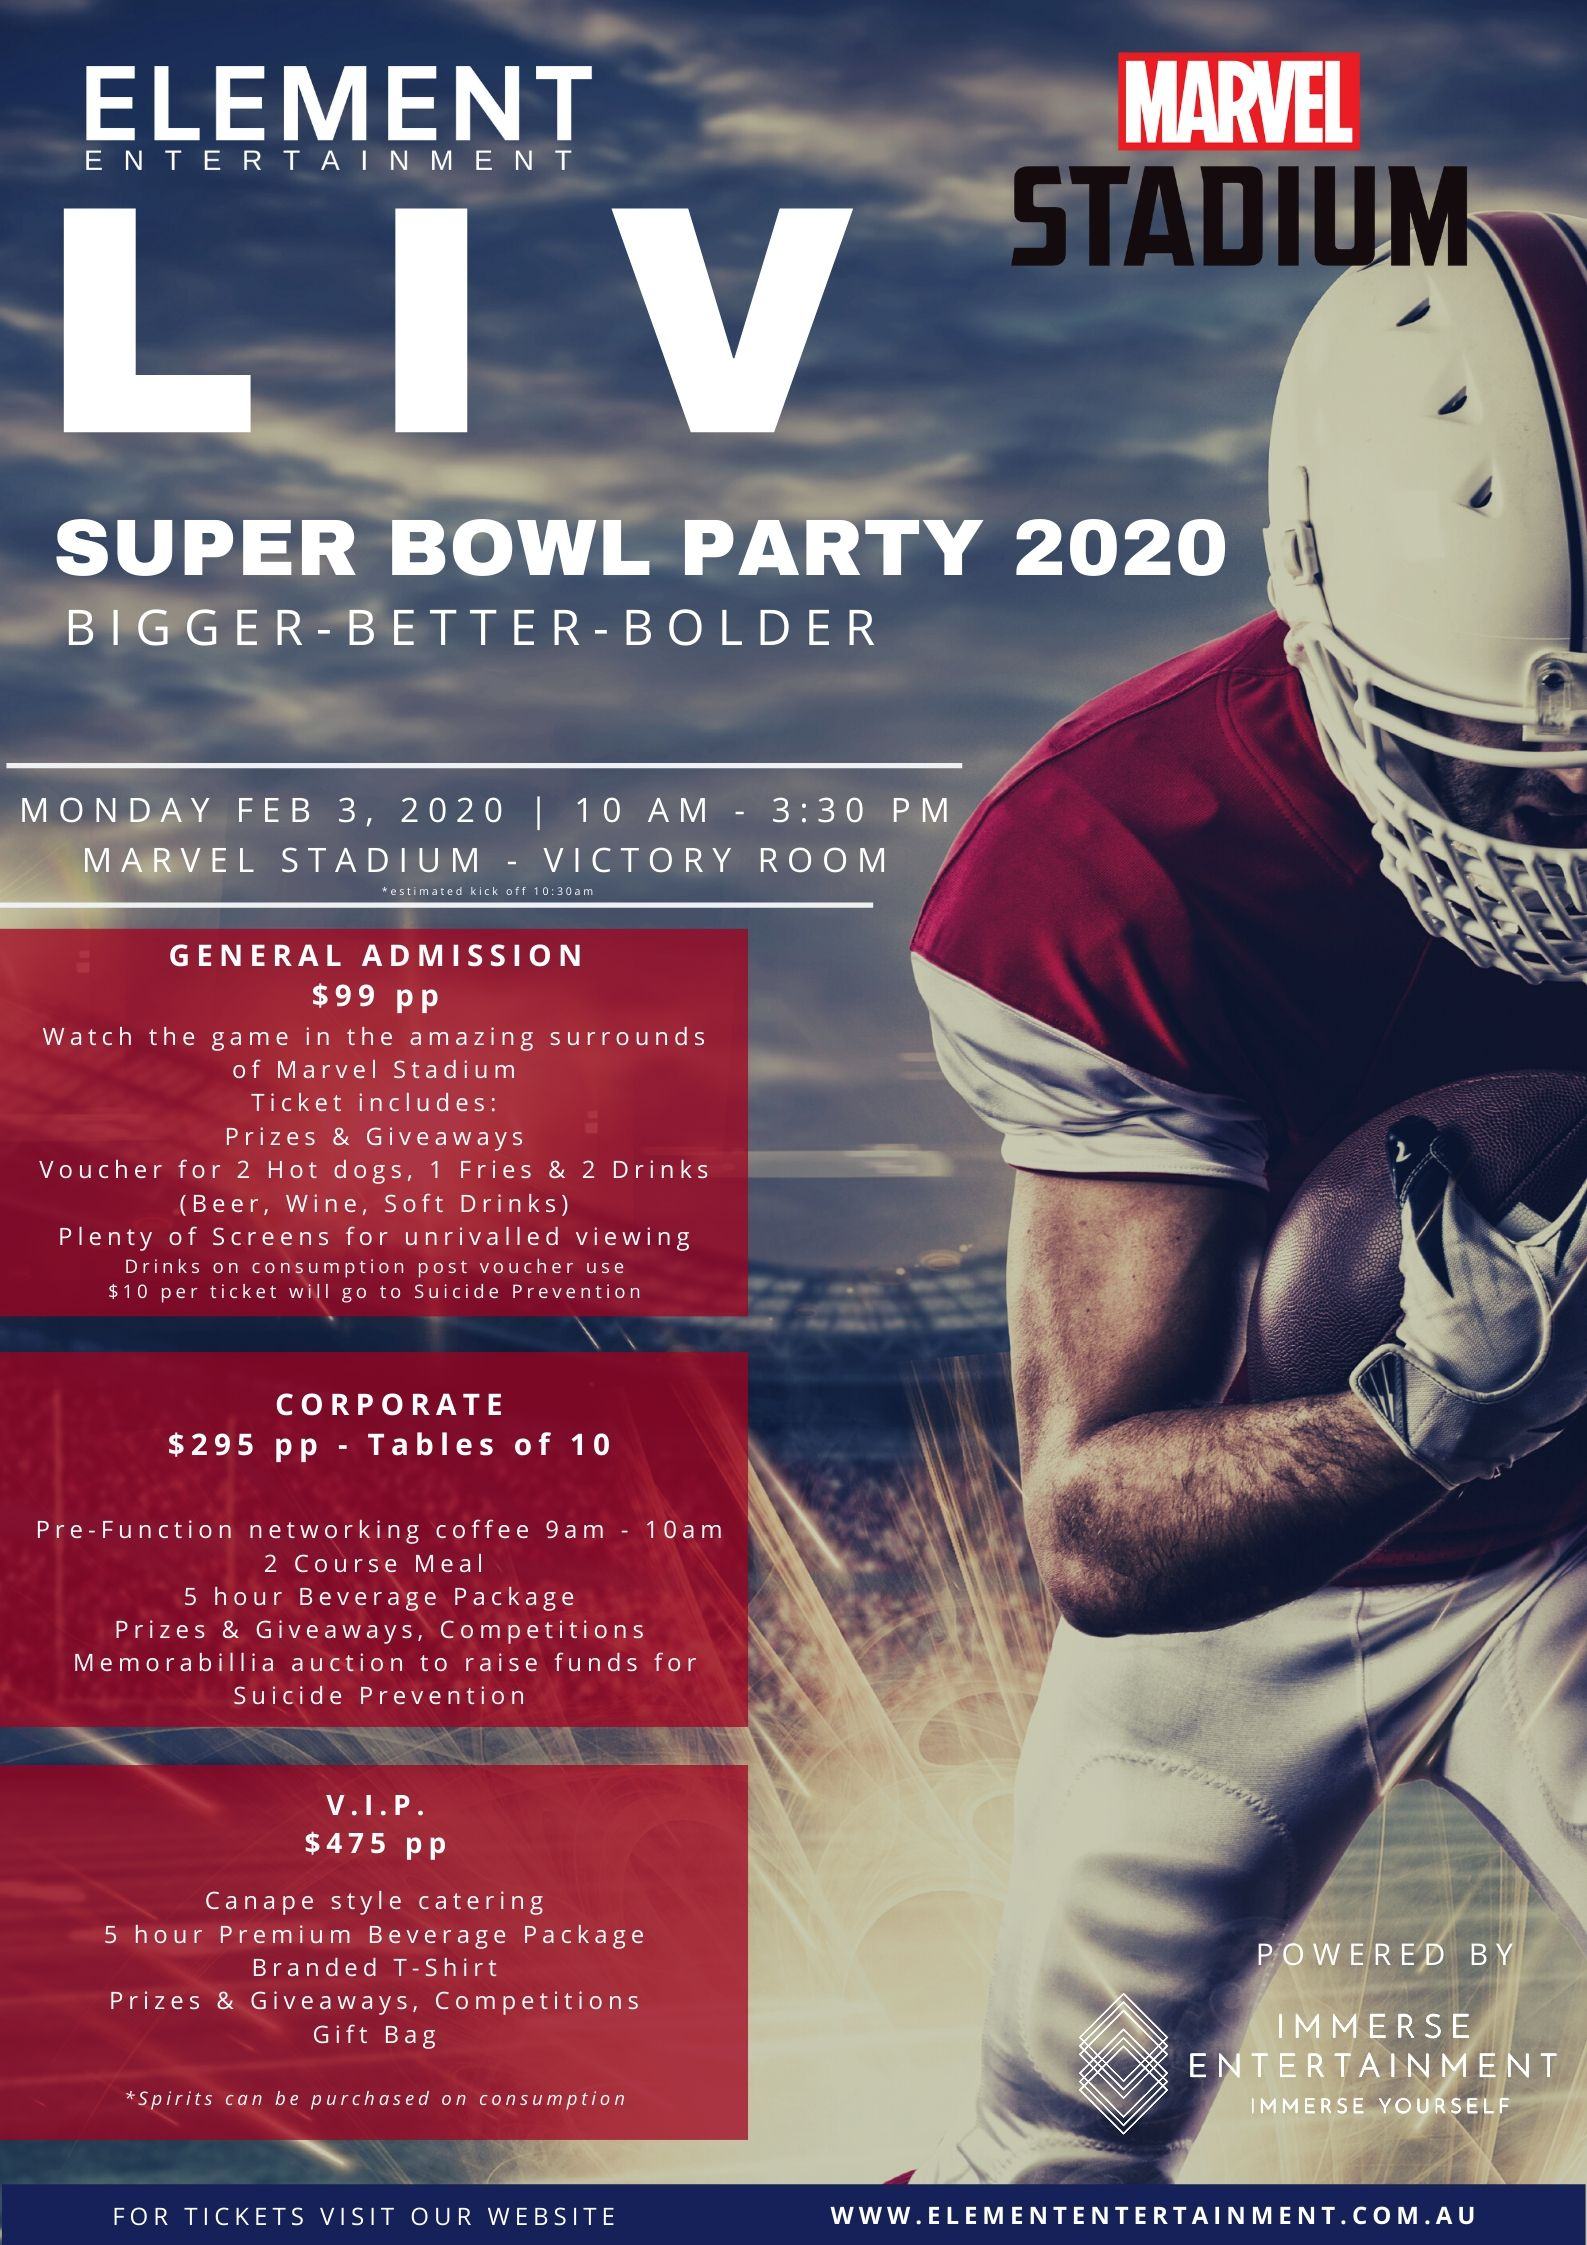 Super Bowl Party 2020